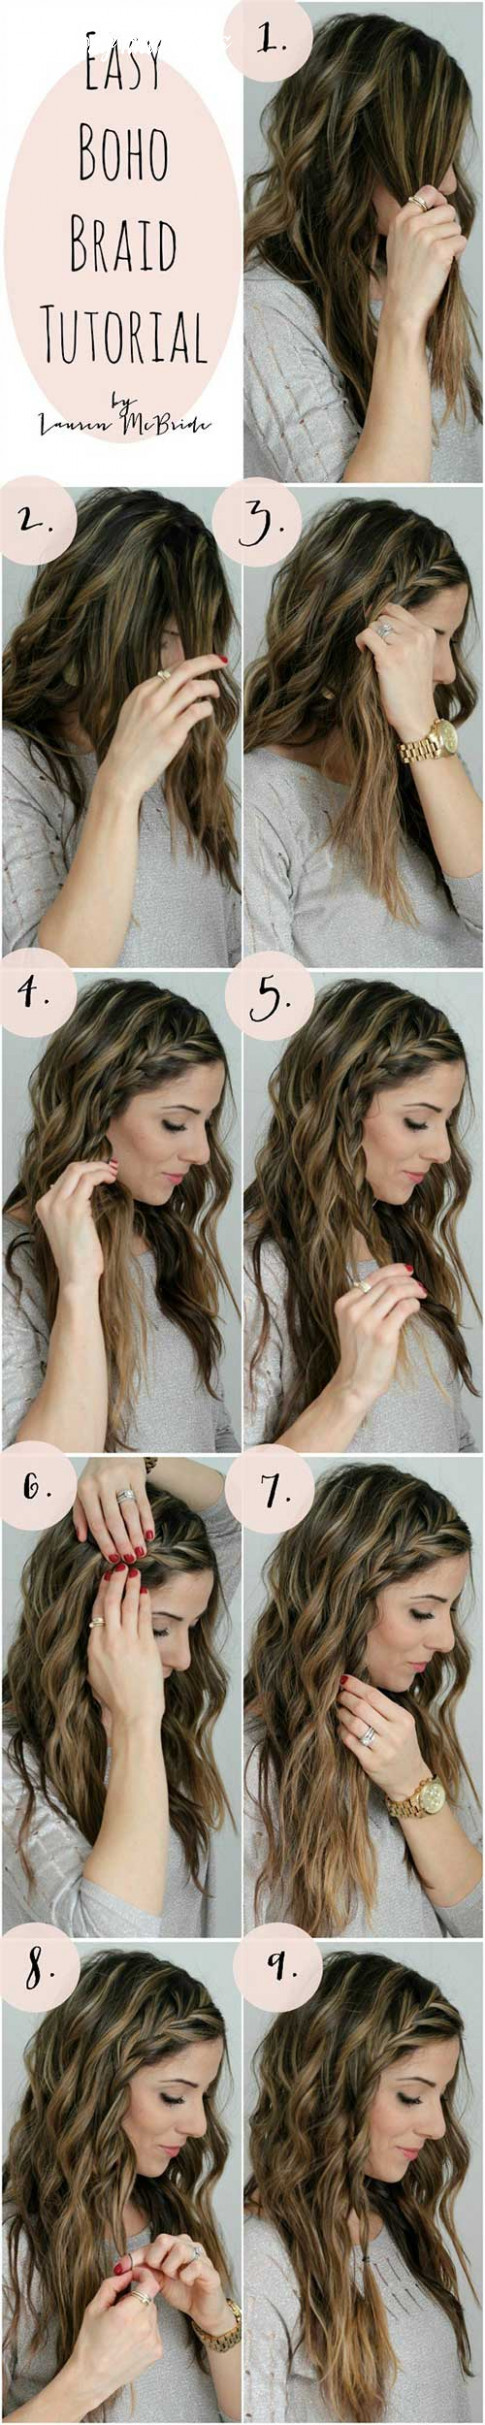 8 awesome hairstyles for girls with long hair cute long hairstyles